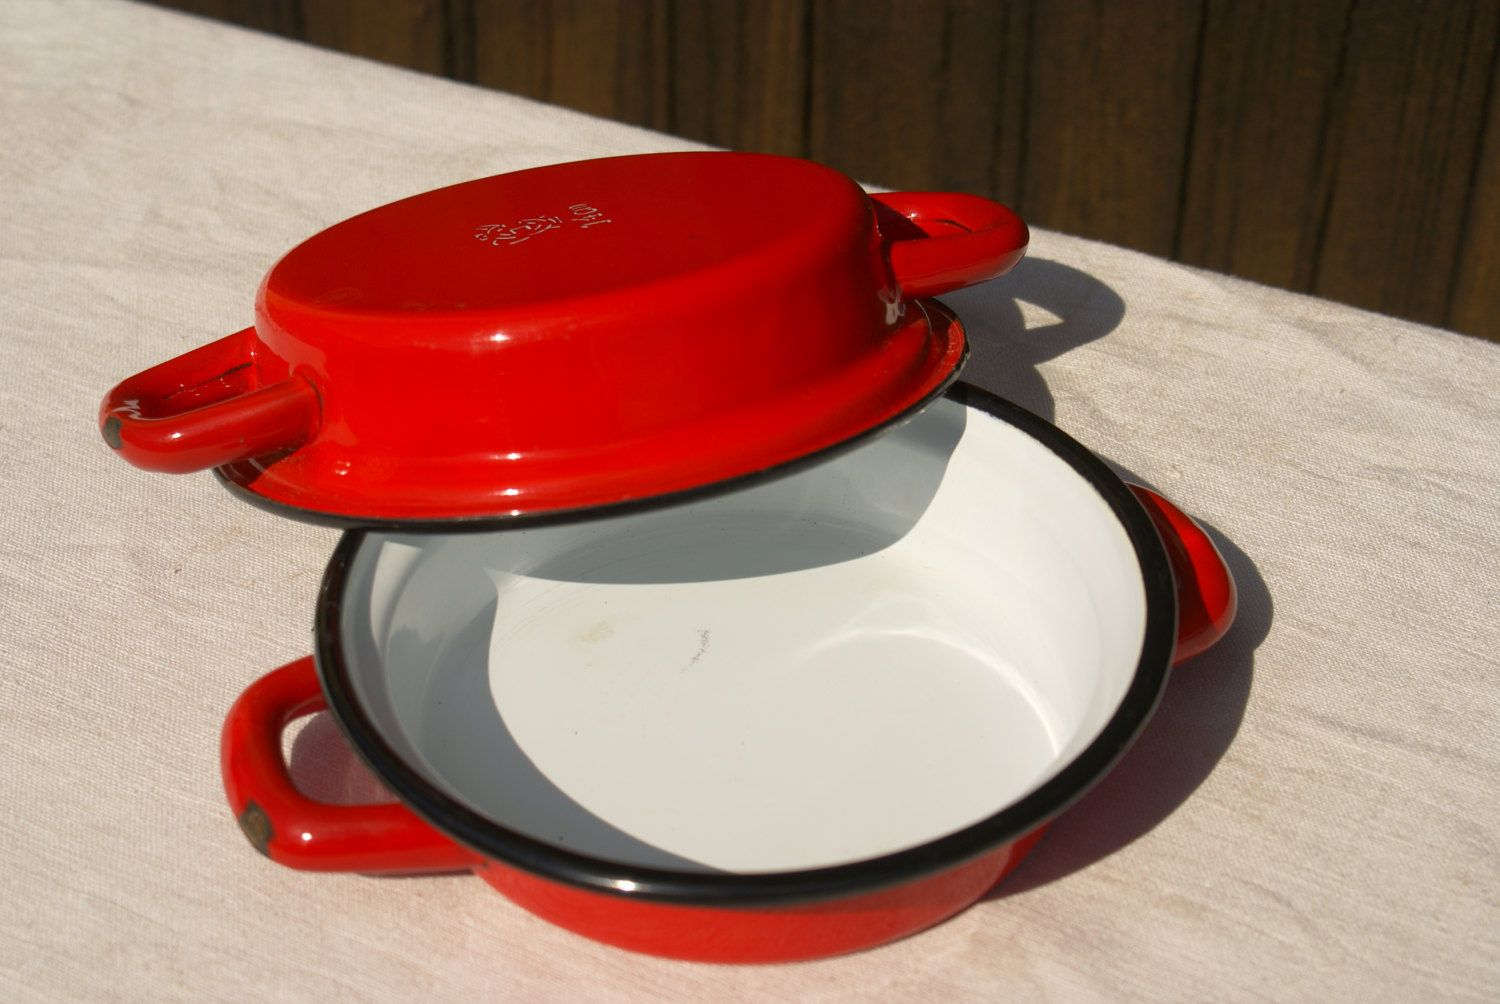 Red Enamel Gratin Dishes, Pair - Vintage French by UneChoseFrancaise on Etsy